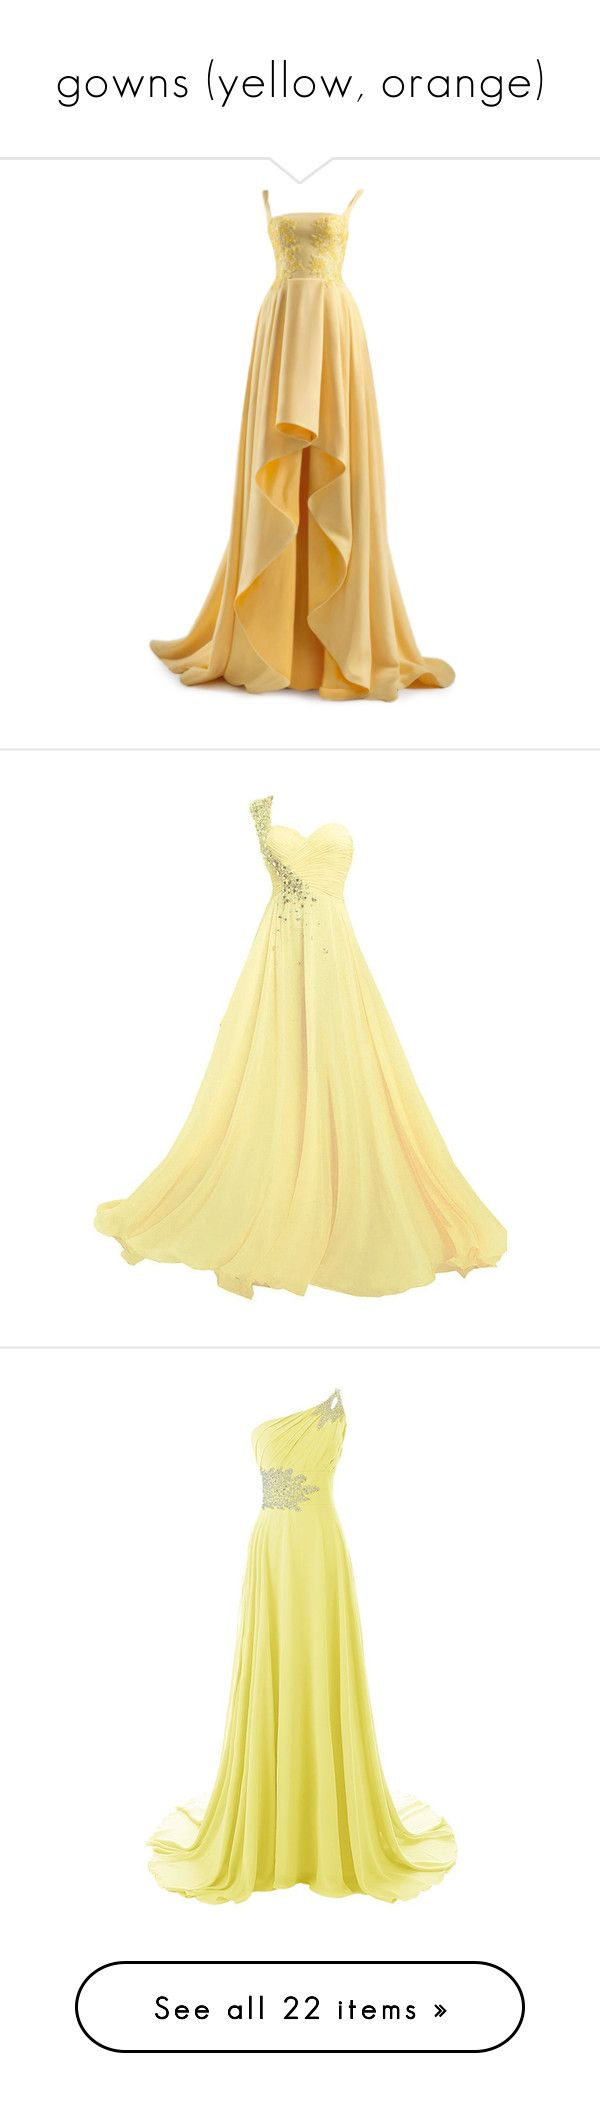 """gowns (yellow, orange)"" by mgdln97 ❤ liked on Polyvore featuring dresses, gowns, long dresses, satinee, ball gowns, beige evening dresses, beige dress, beige long dress, beige gown and gown"